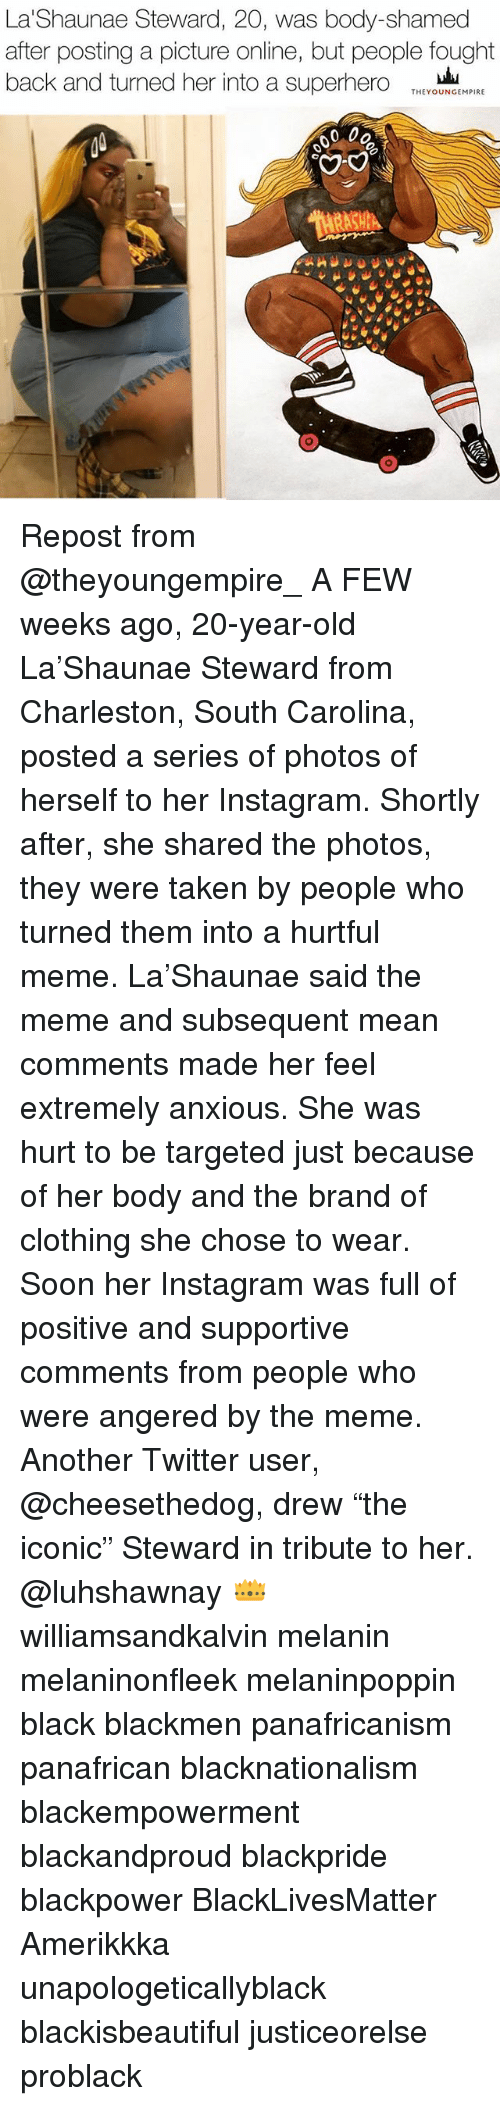 """Black Lives Matter, Instagram, and Meme: La Shaunae Steward, 20, was body-shamed  after posting a picture online, but people fought  back and turned her into a superhero  THEY OUNGEMPIRE  0 00 Repost from @theyoungempire_ A FEW weeks ago, 20-year-old La'Shaunae Steward from Charleston, South Carolina, posted a series of photos of herself to her Instagram. Shortly after, she shared the photos, they were taken by people who turned them into a hurtful meme. La'Shaunae said the meme and subsequent mean comments made her feel extremely anxious. She was hurt to be targeted just because of her body and the brand of clothing she chose to wear. Soon her Instagram was full of positive and supportive comments from people who were angered by the meme. Another Twitter user, @cheesethedog, drew """"the iconic"""" Steward in tribute to her. @luhshawnay 👑 williamsandkalvin melanin melaninonfleek melaninpoppin black blackmen panafricanism panafrican blacknationalism blackempowerment blackandproud blackpride blackpower BlackLivesMatter Amerikkka unapologeticallyblack blackisbeautiful justiceorelse problack"""